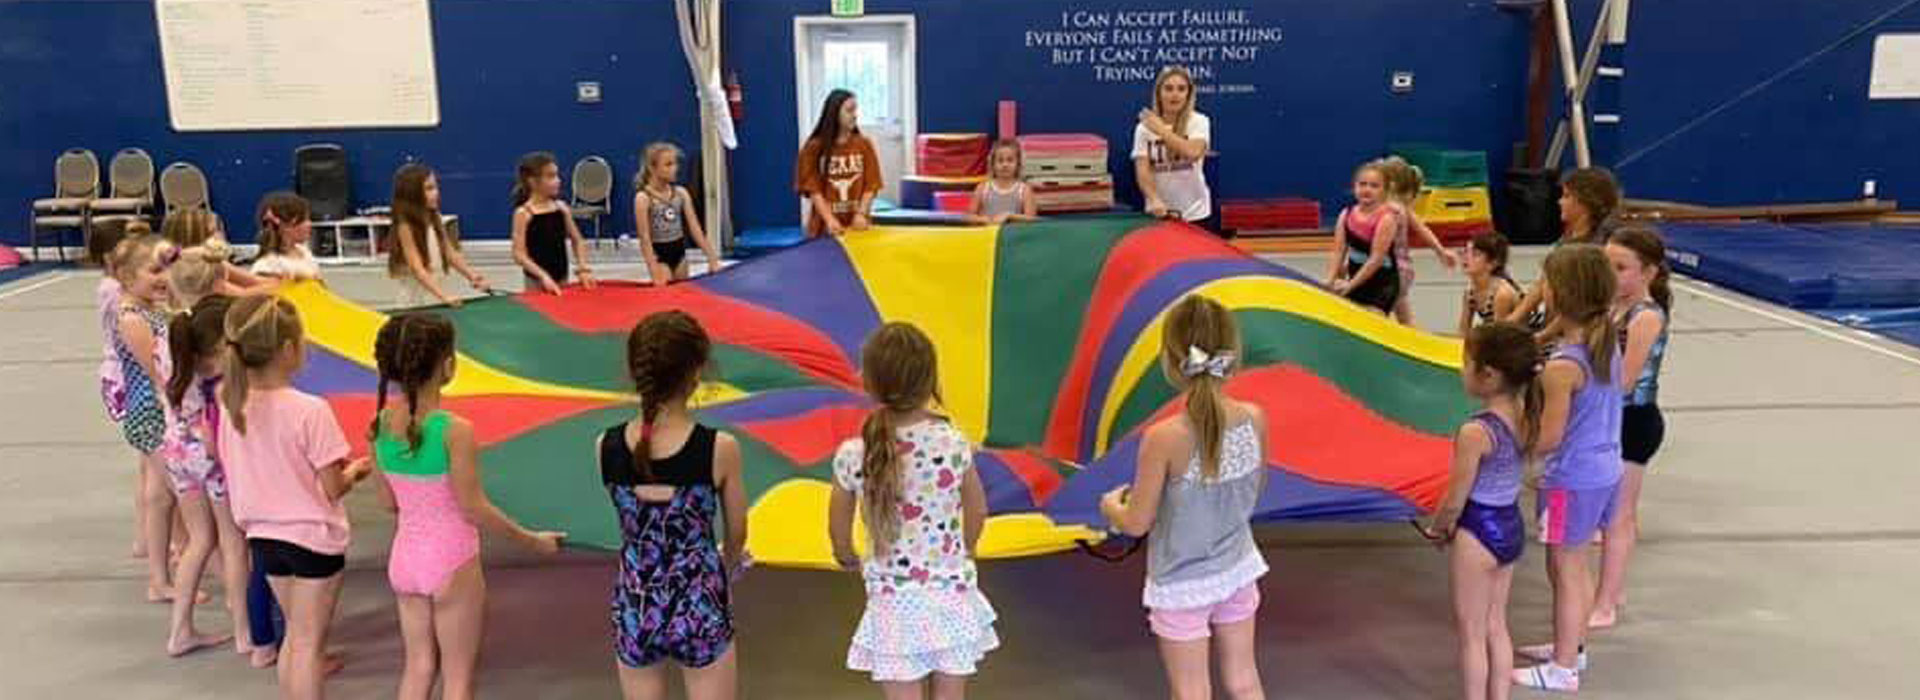 Why Flipnastics Is Ranked One Of The Best Gymnastics Training Gym in Lakeway, TX close to Beecave and West Austin, TX